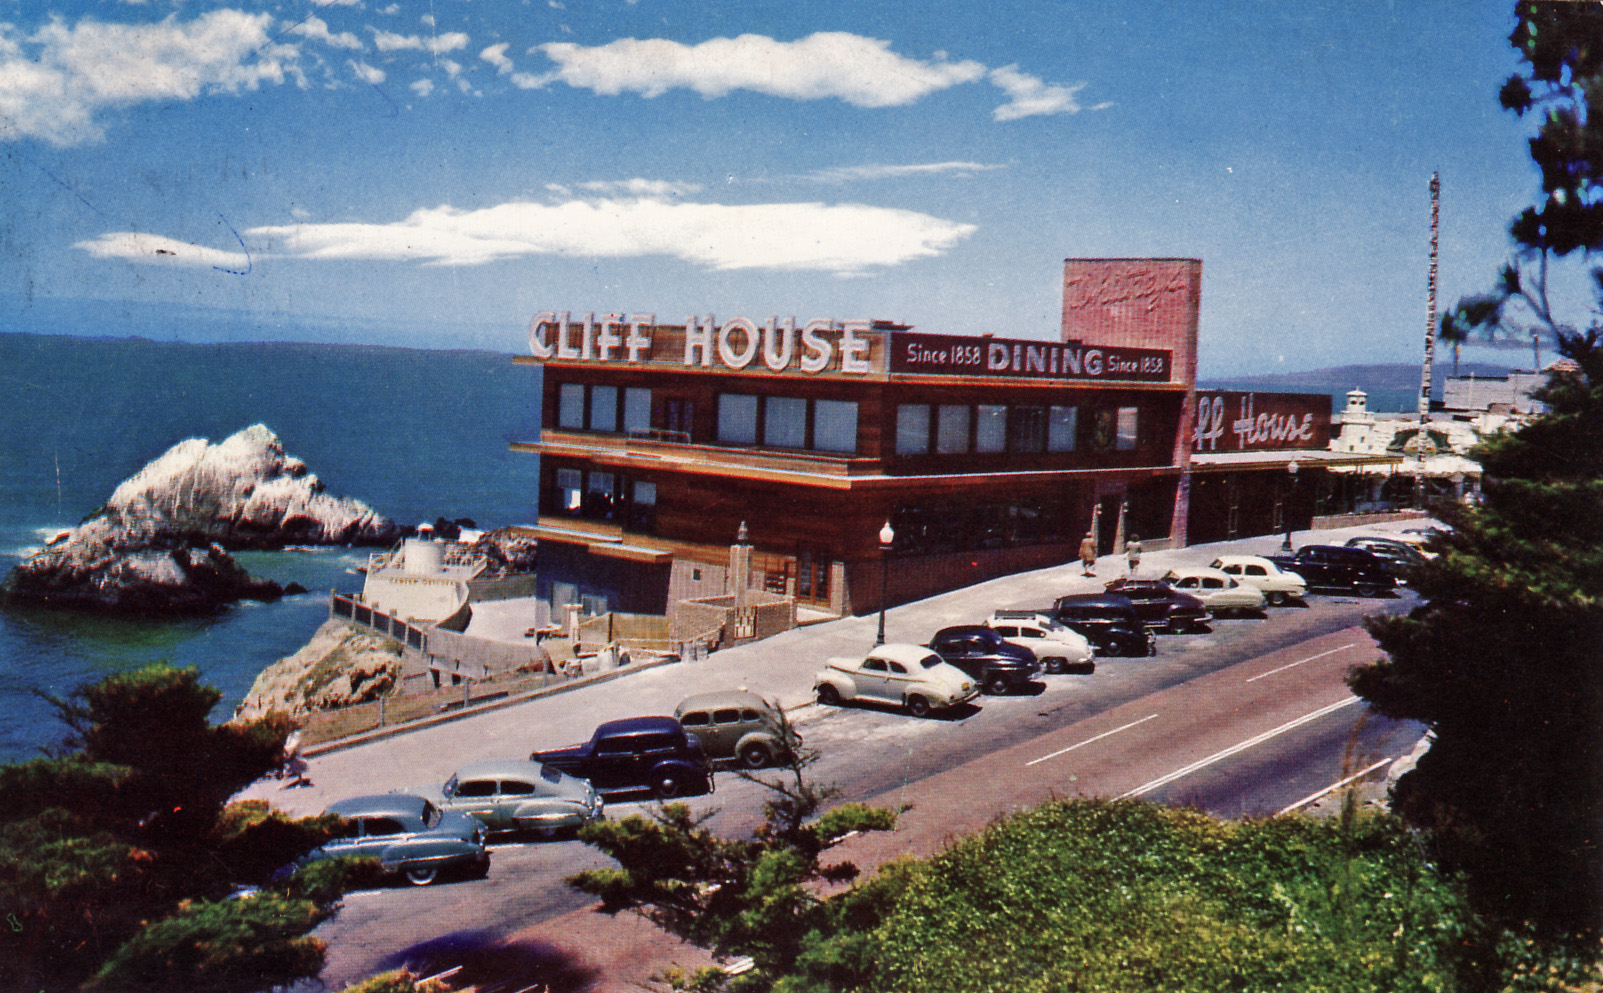 File:Cliff House Comp.jpg - Wikimedia Commons